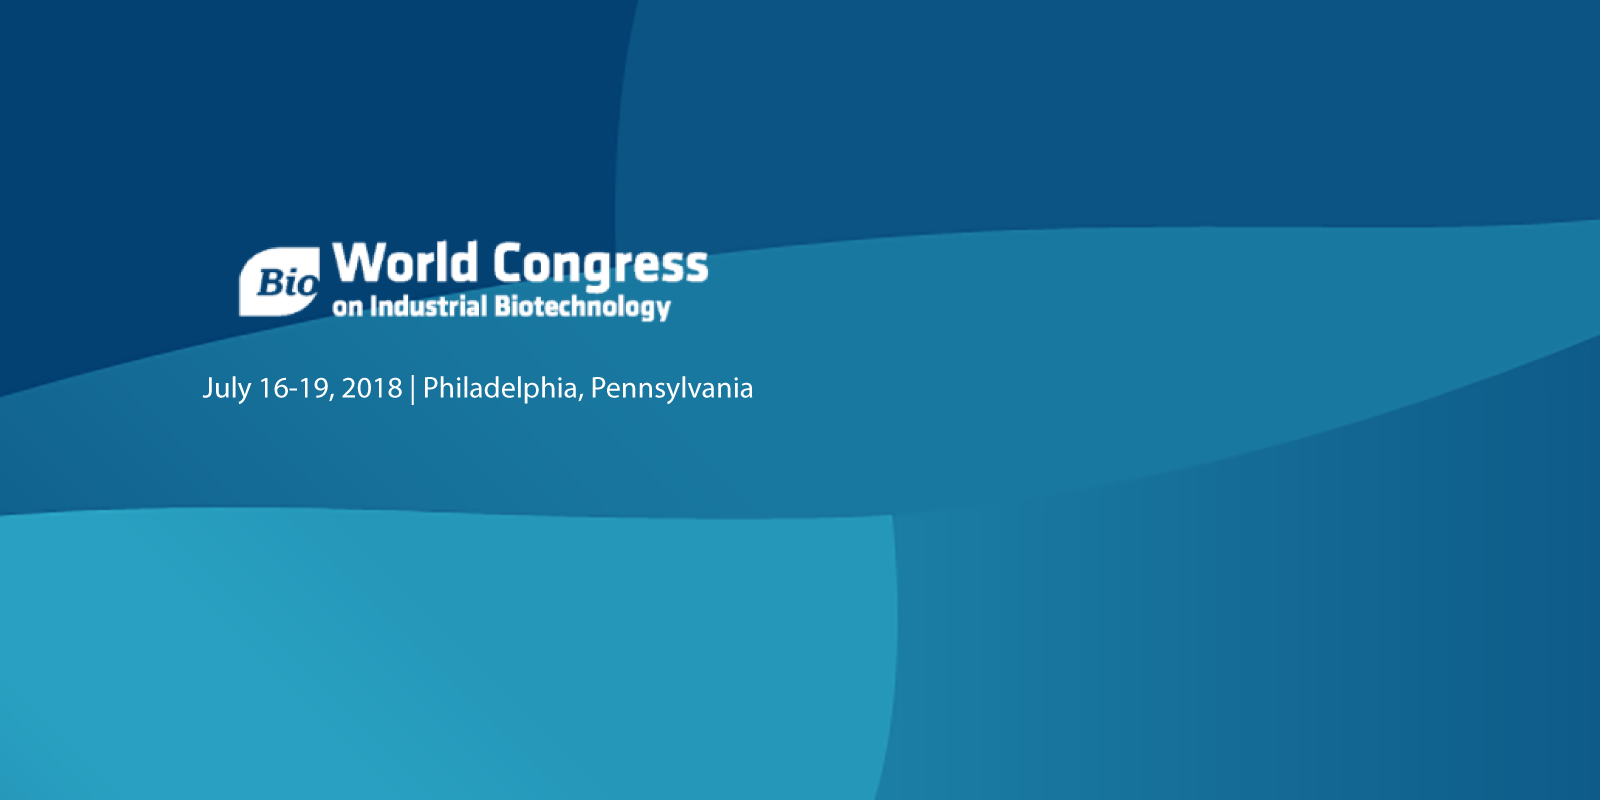 Bio World Congress Conference